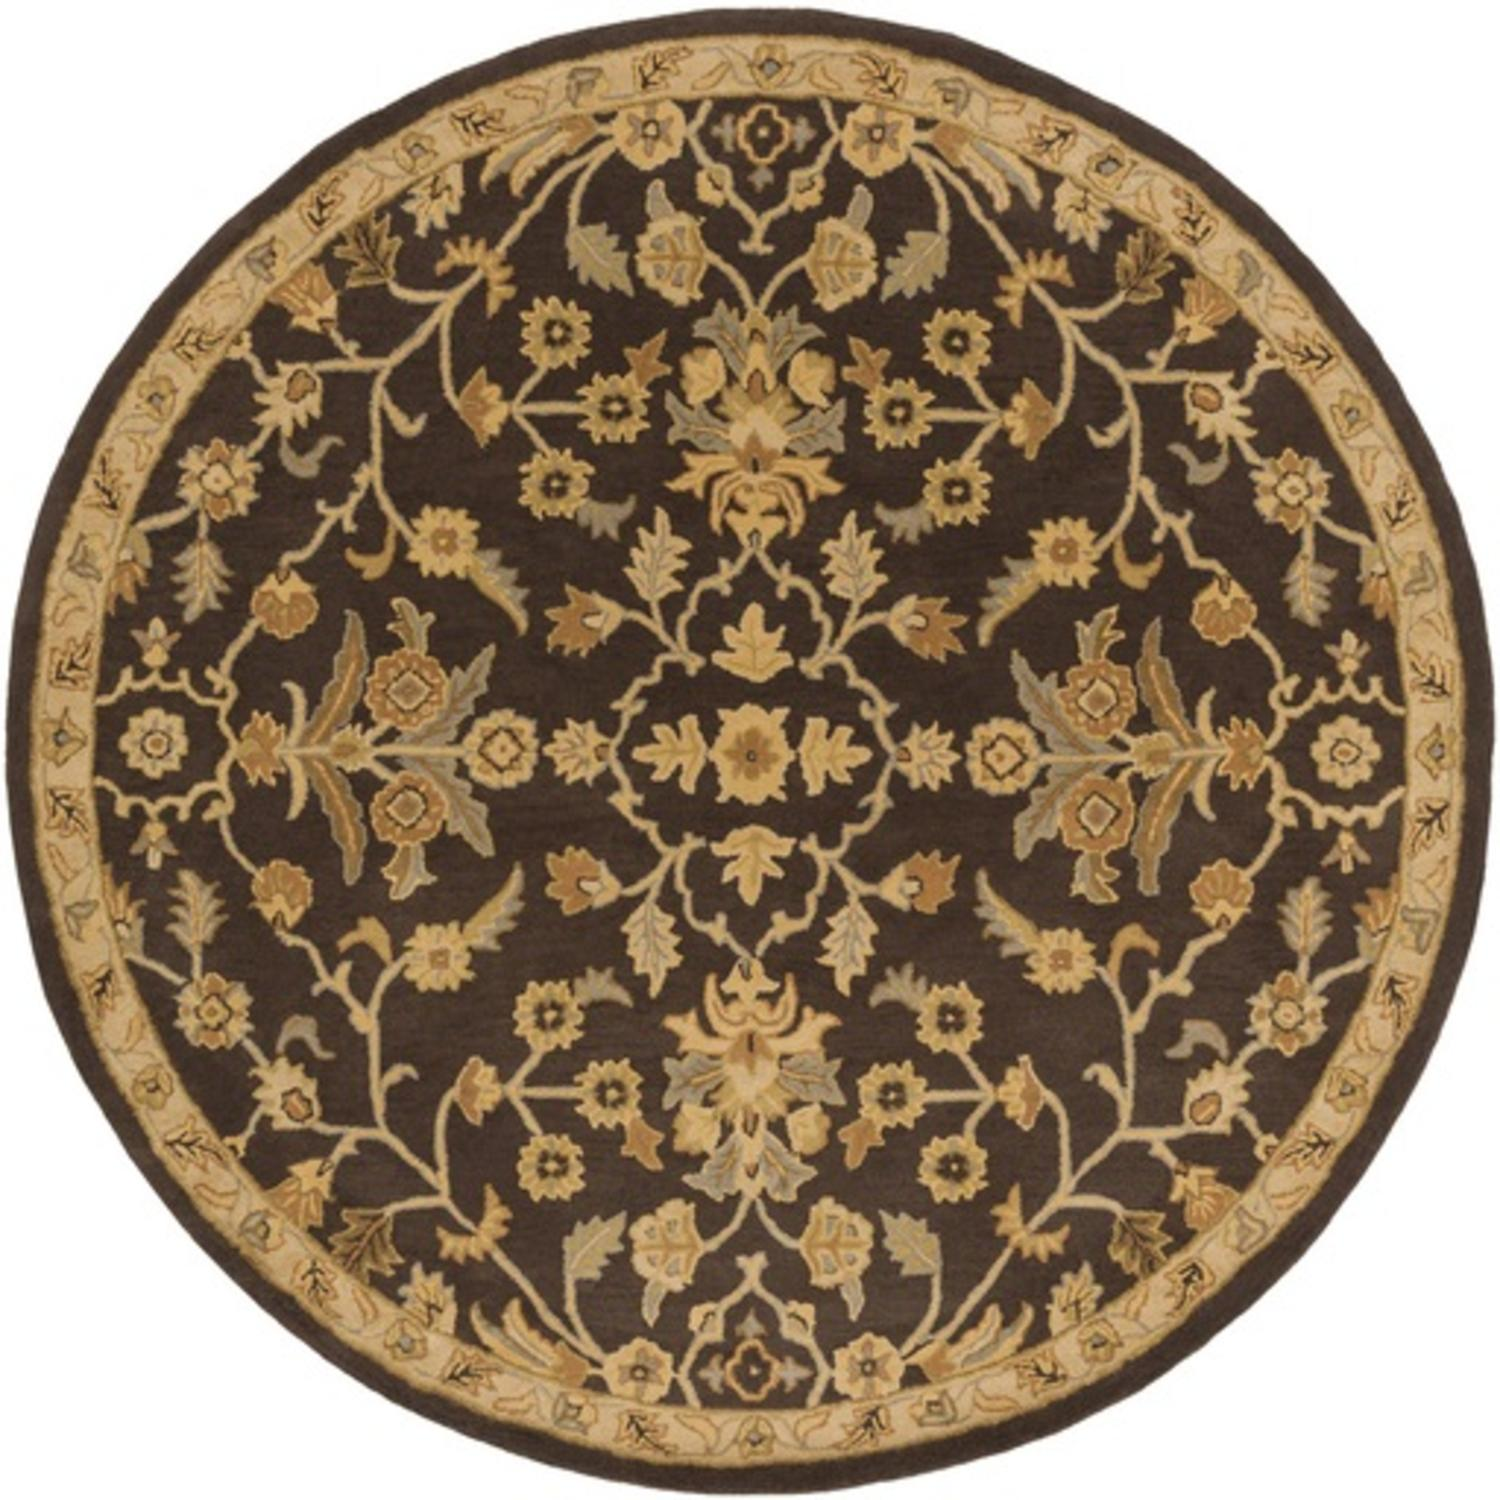 9.75' French Elegance Espresso, Gray and Gold Hand Tufted Round Wool Area Throw Rug